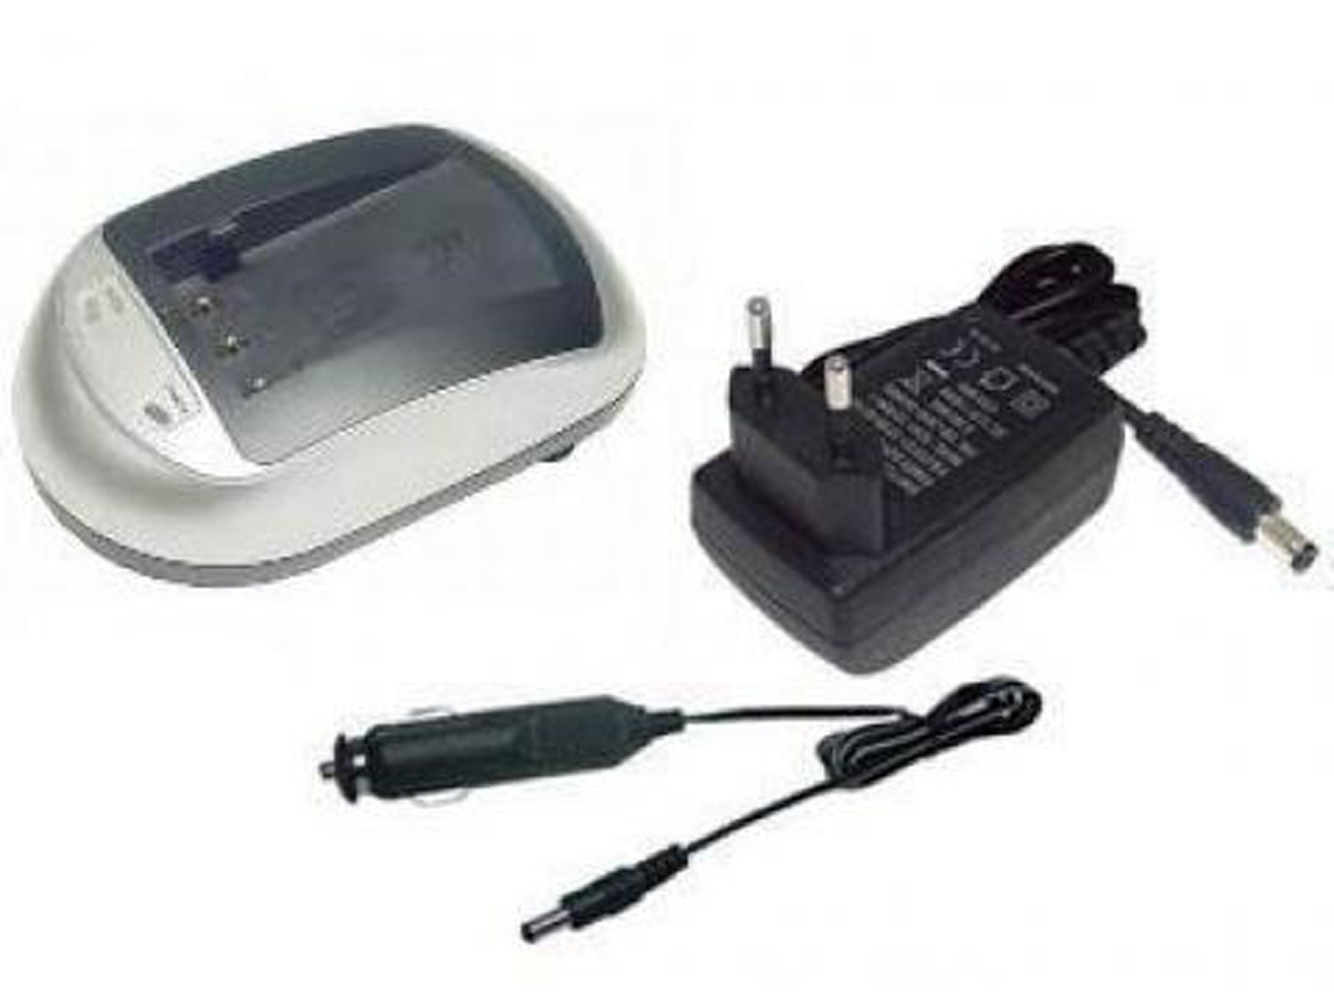 Battery Charger for CANON NB-3L, CB-2LU, CB-2LUE